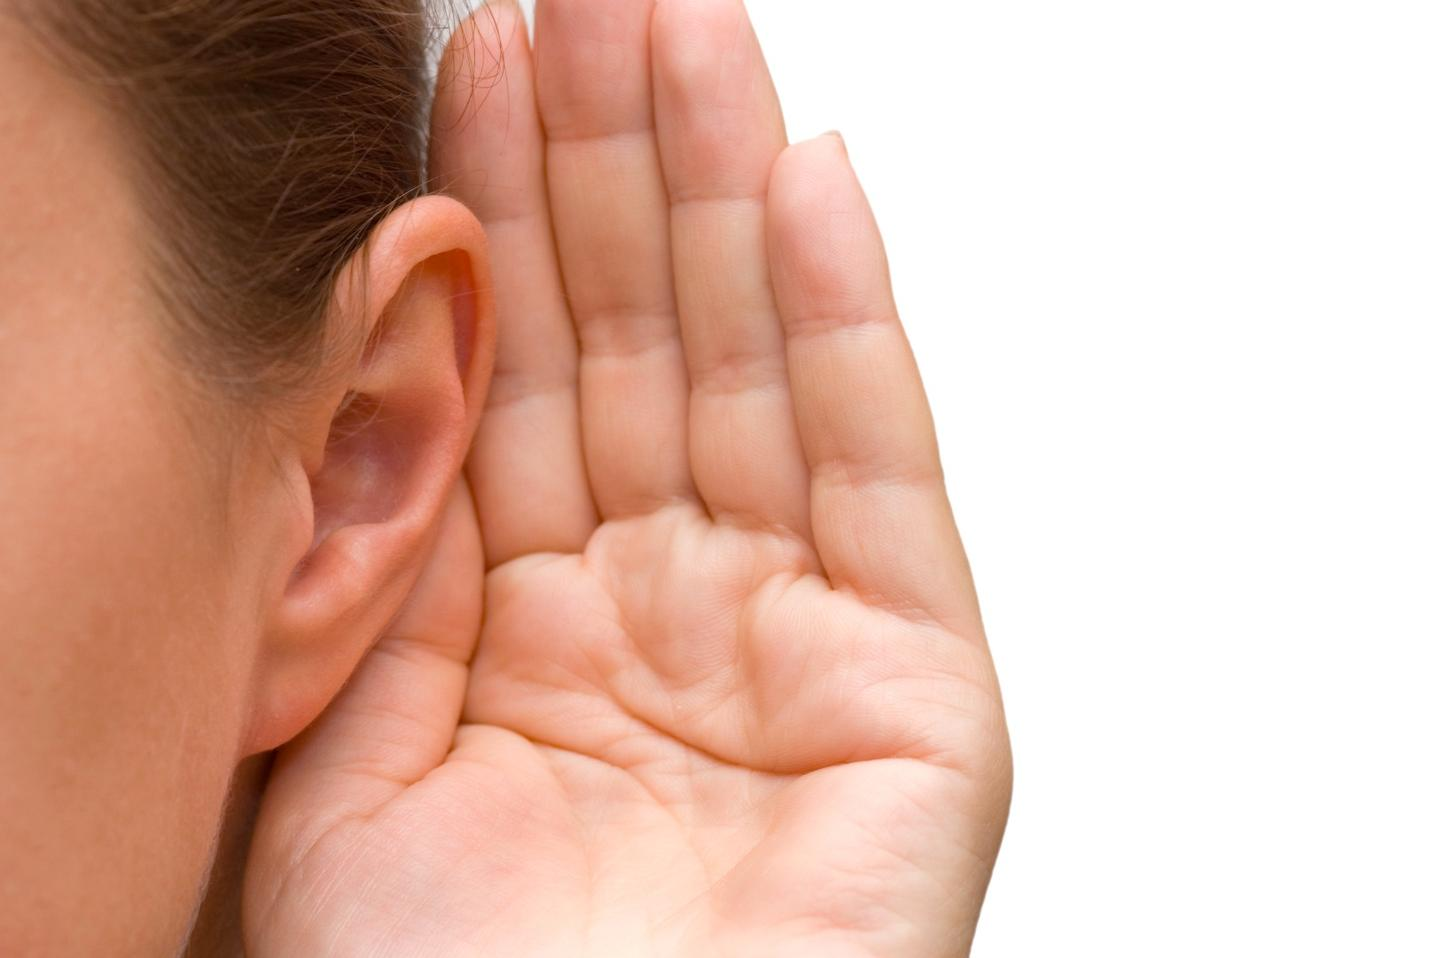 Scientists can now regrow the inner ear cells that convert sound waves to nerve signals